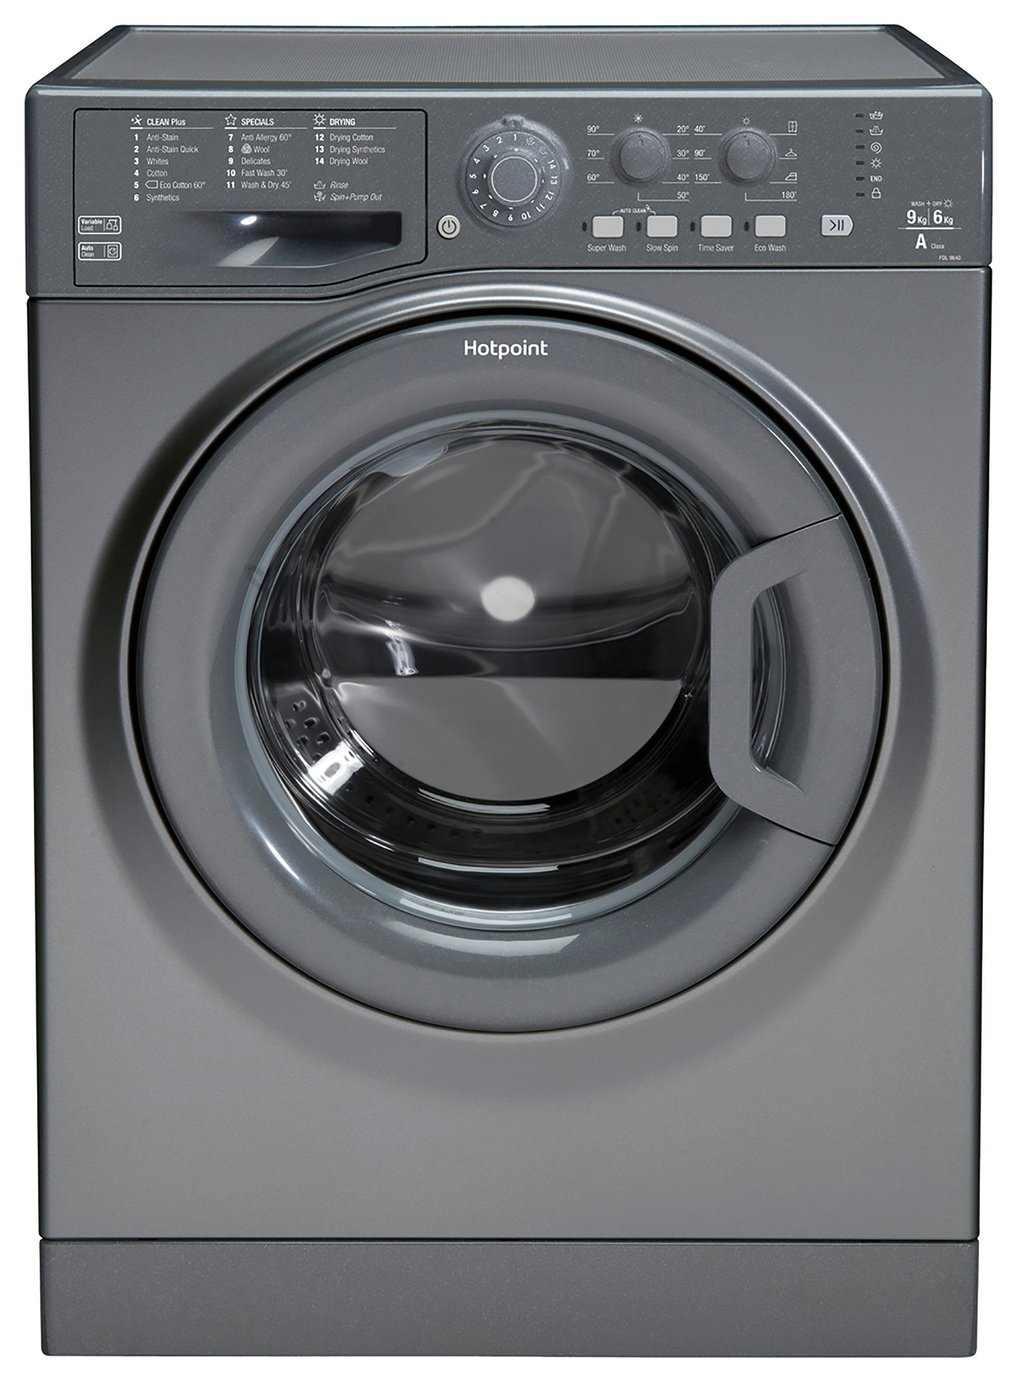 Hotpoint FDL9640GUK 9KG / 6KG 1400 Washer Dryer - Graphite